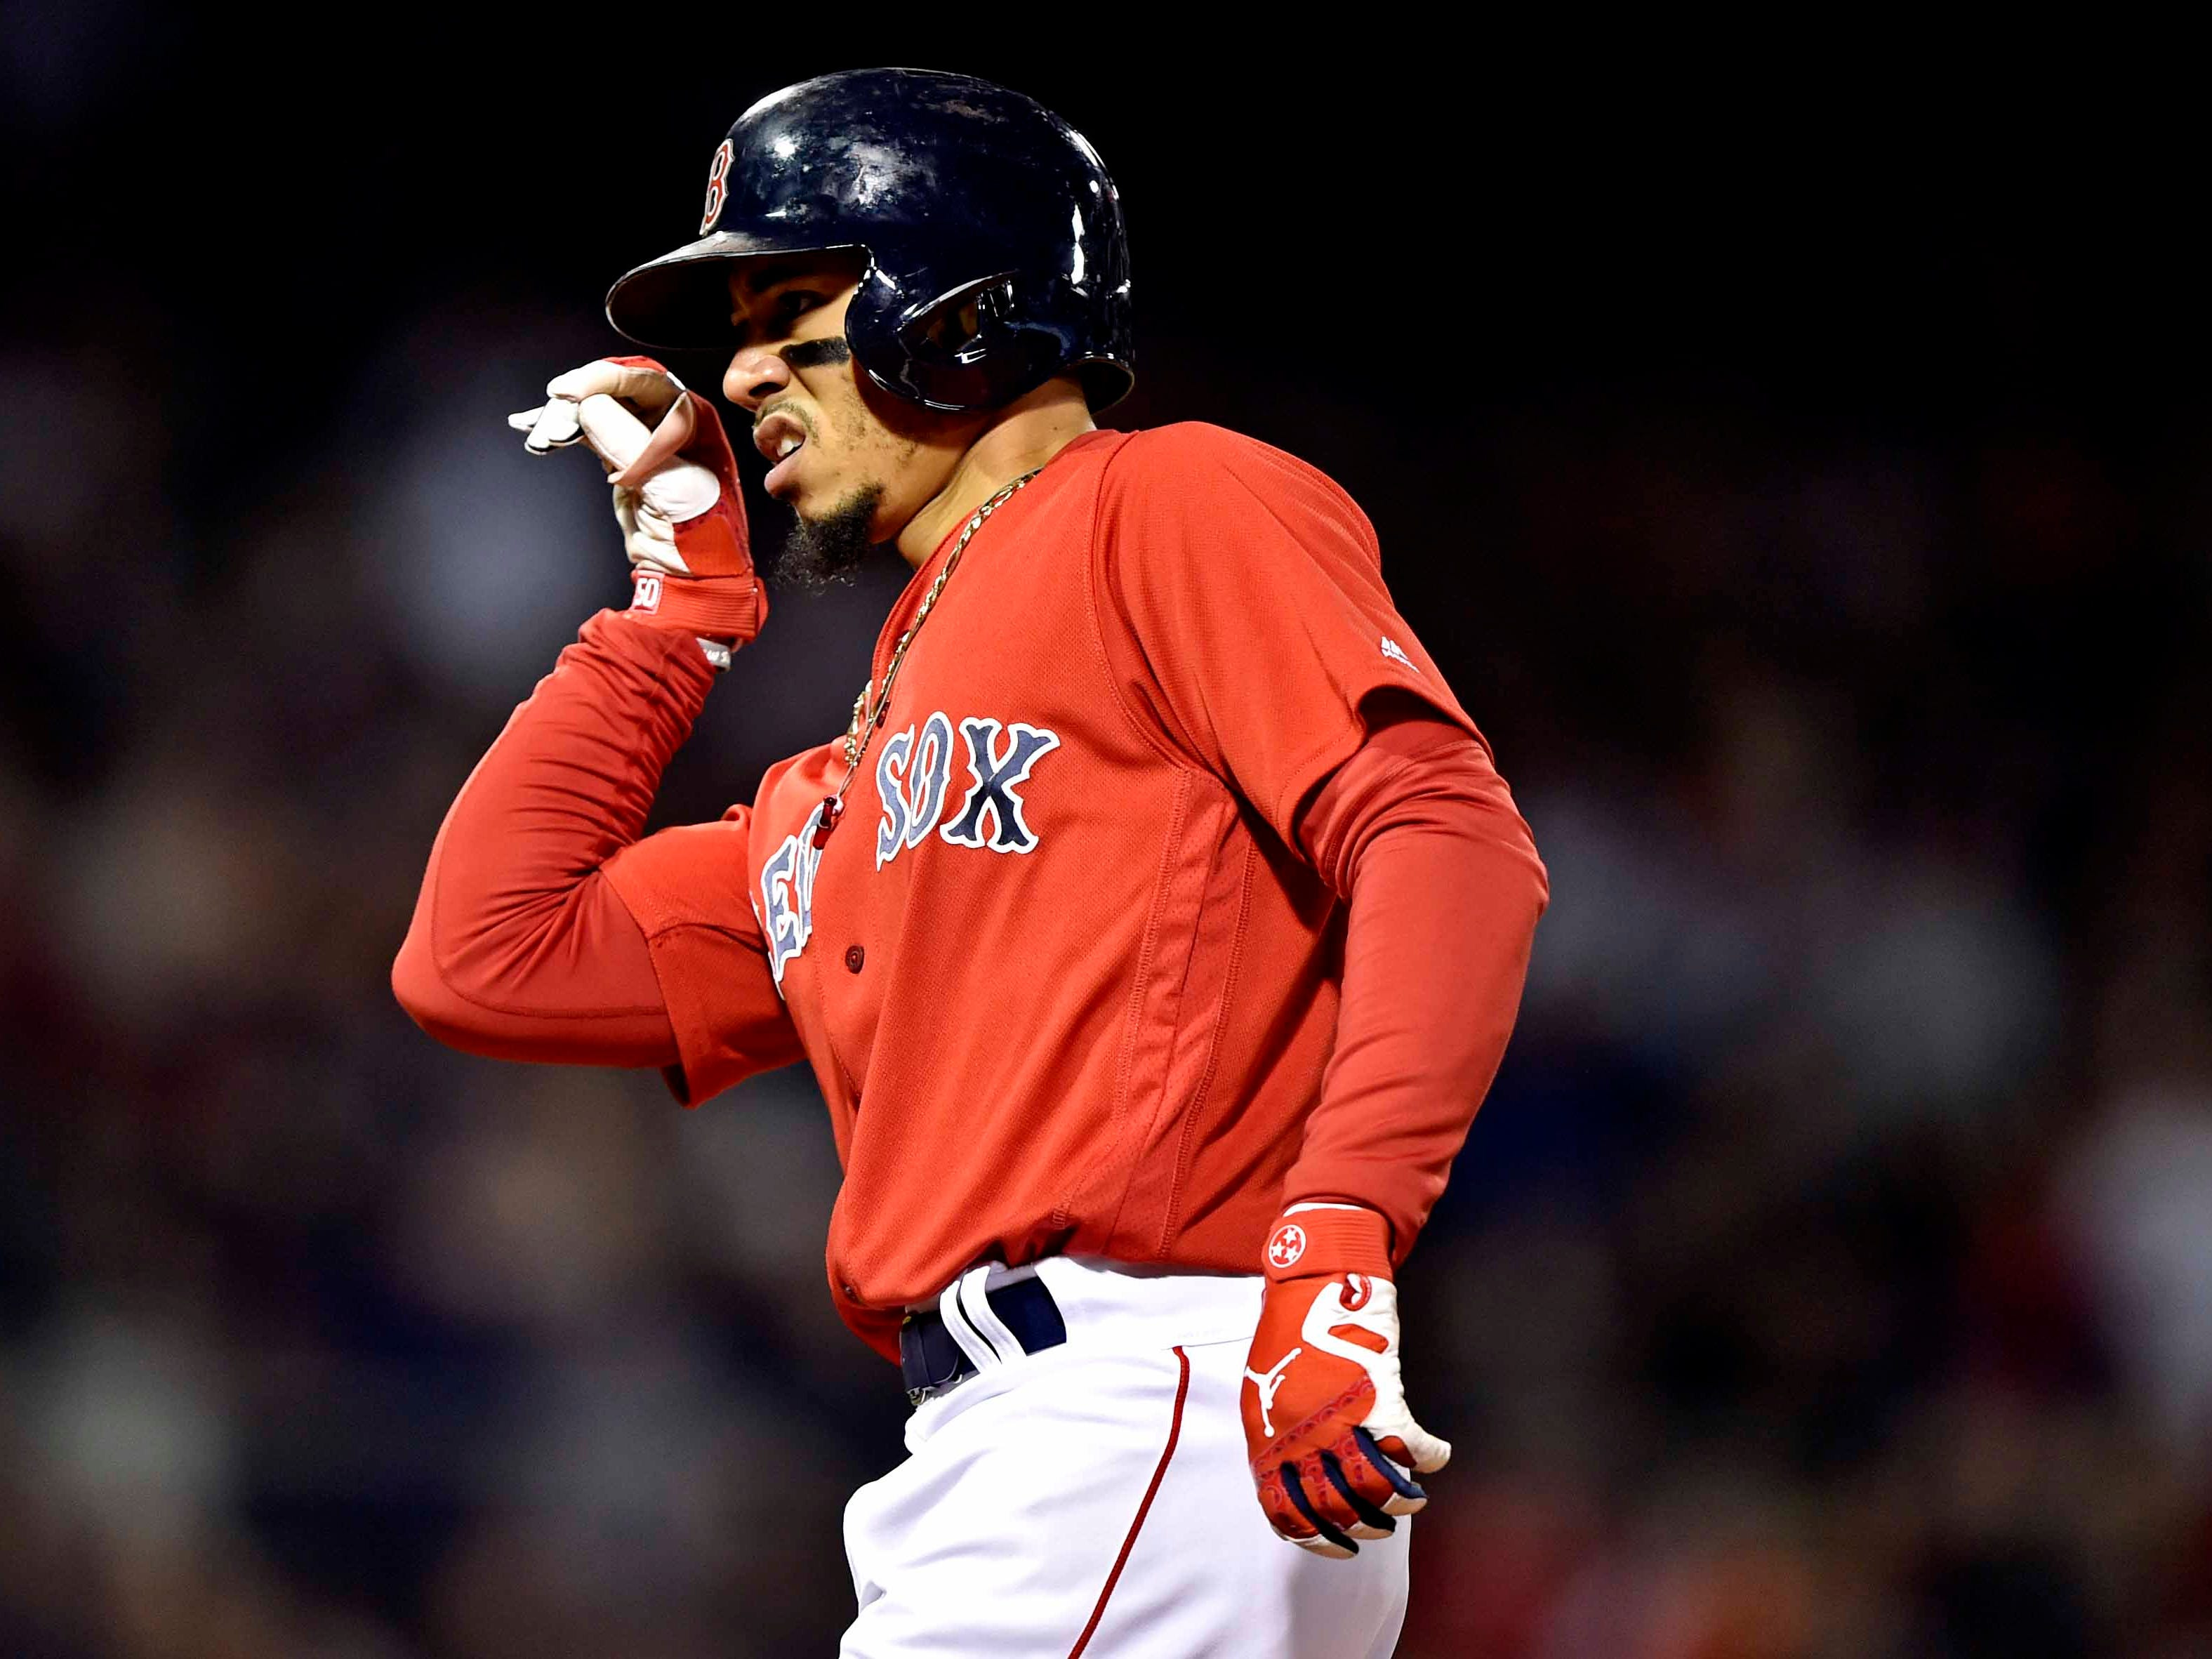 ALCS Game 1: Red Sox right fielder Mookie Betts singles off Justin Verlander in the first inning.